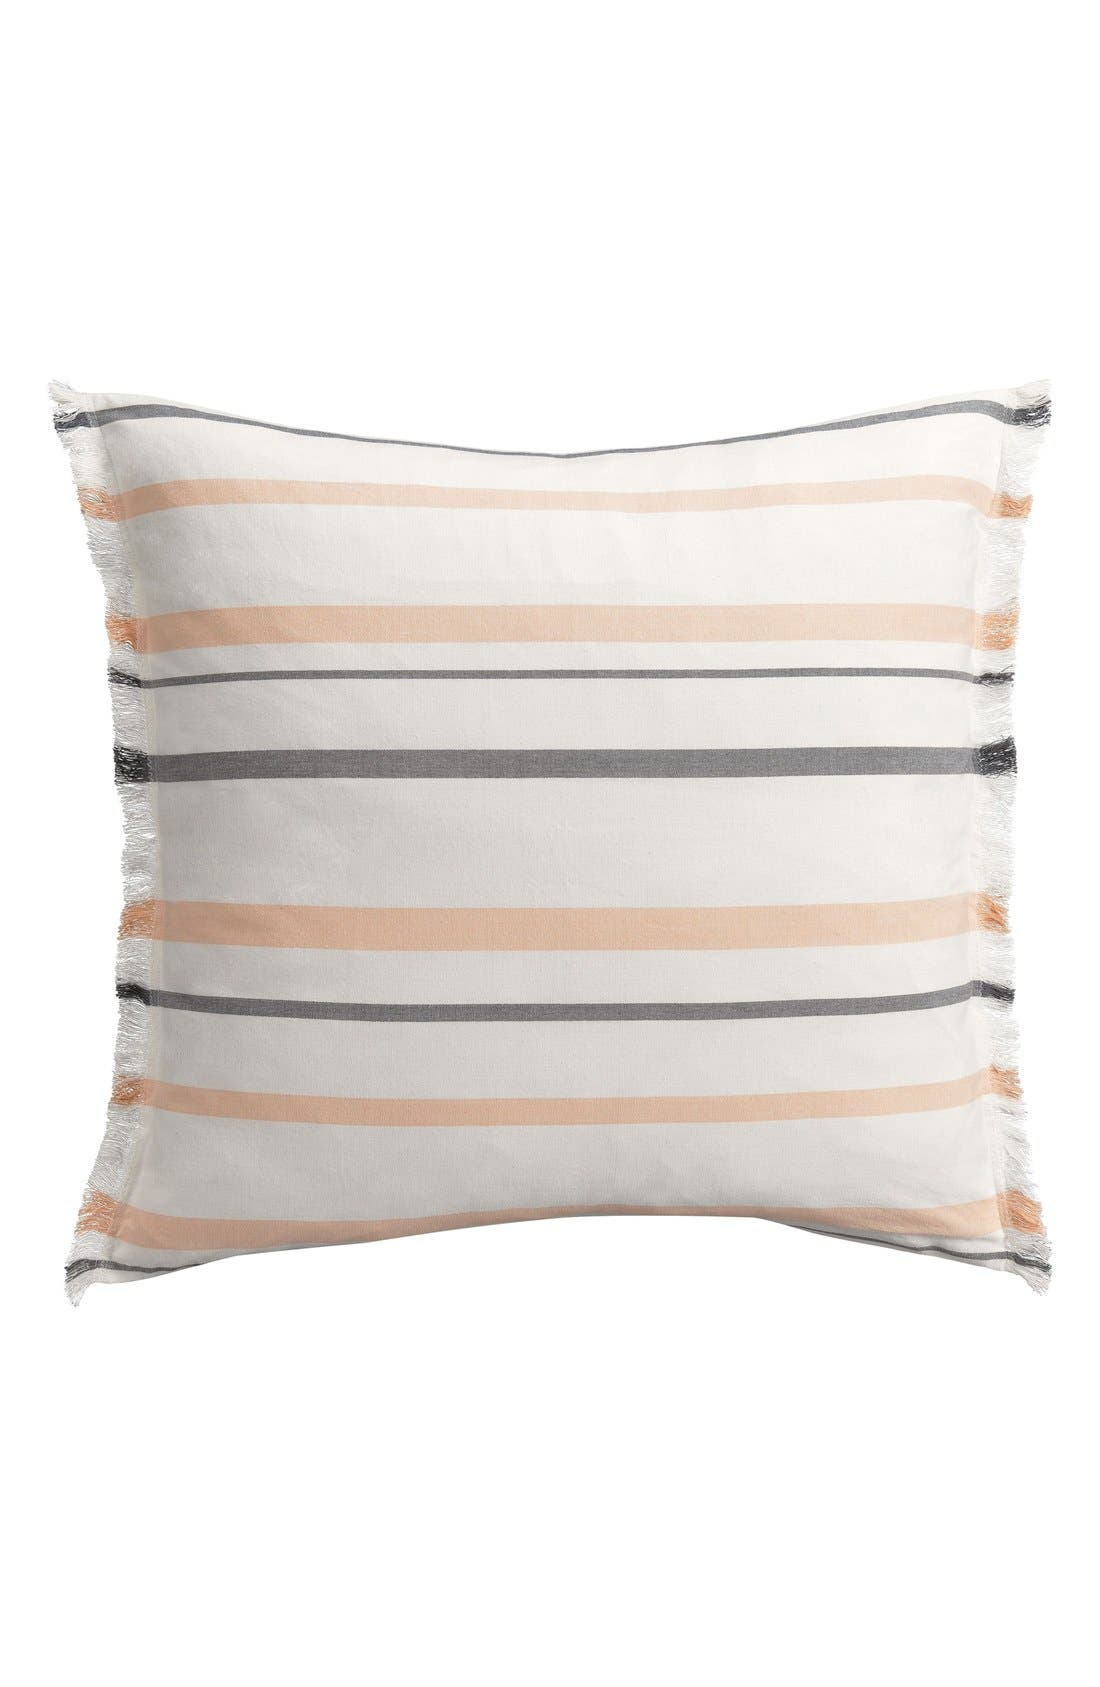 Alternate Image 1 Selected - cupcakes and cashmere Stripe Euro Sham